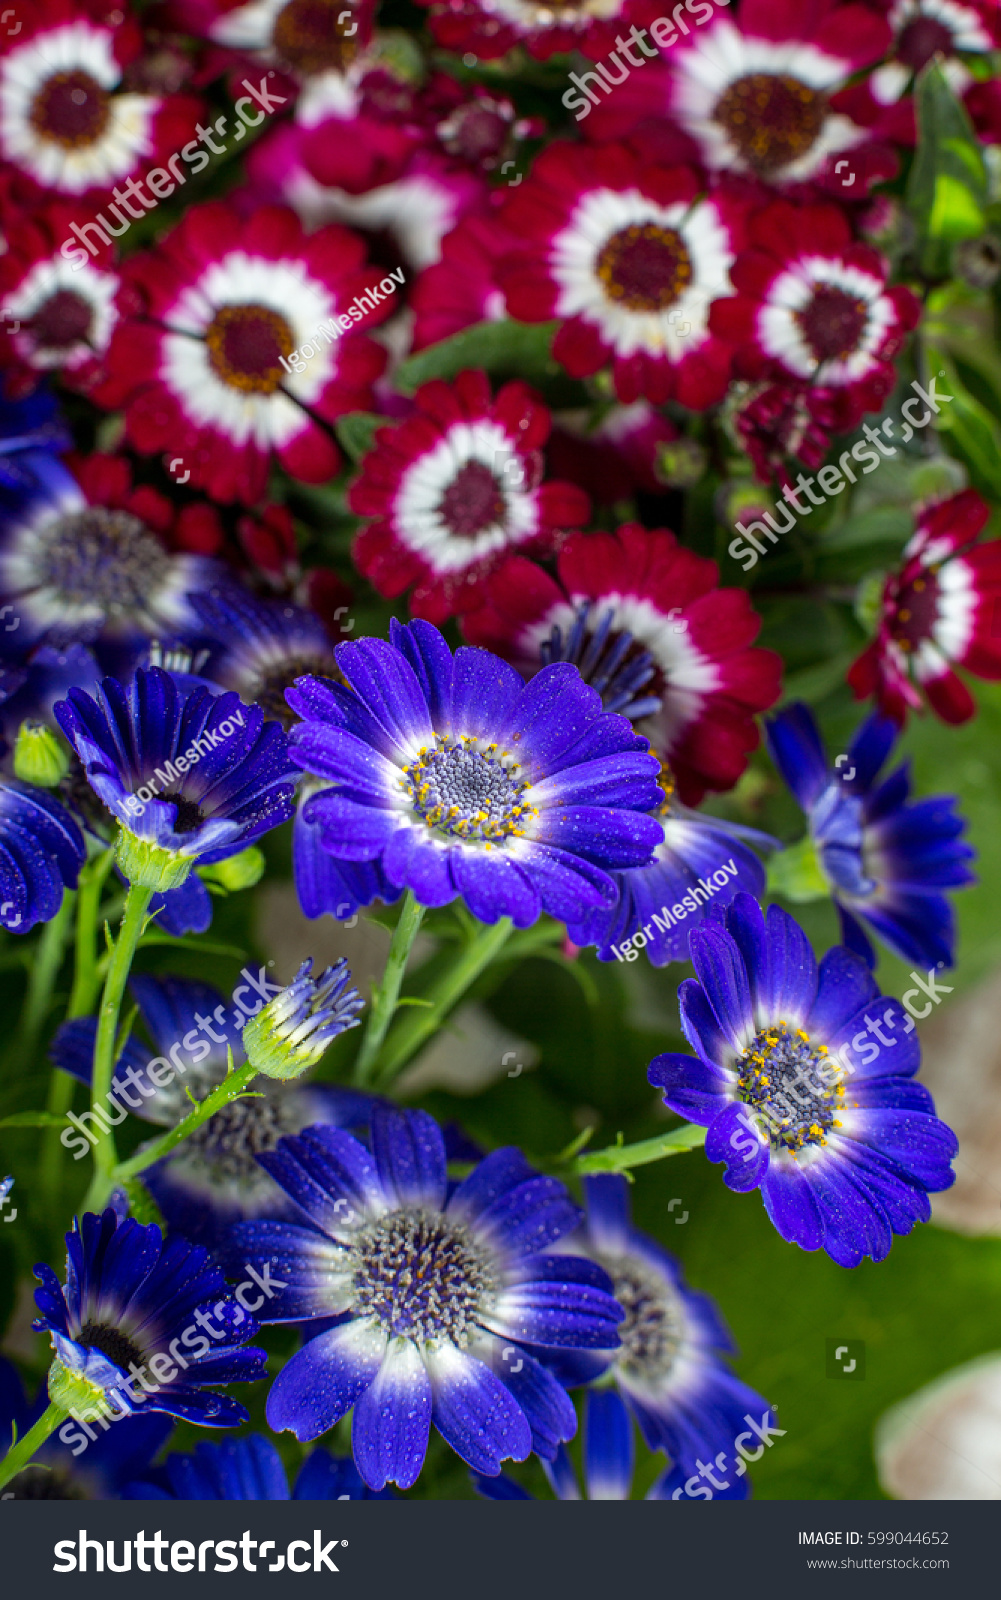 Blue Red Flowers Dew Drops Spring Stock Photo Royalty Free